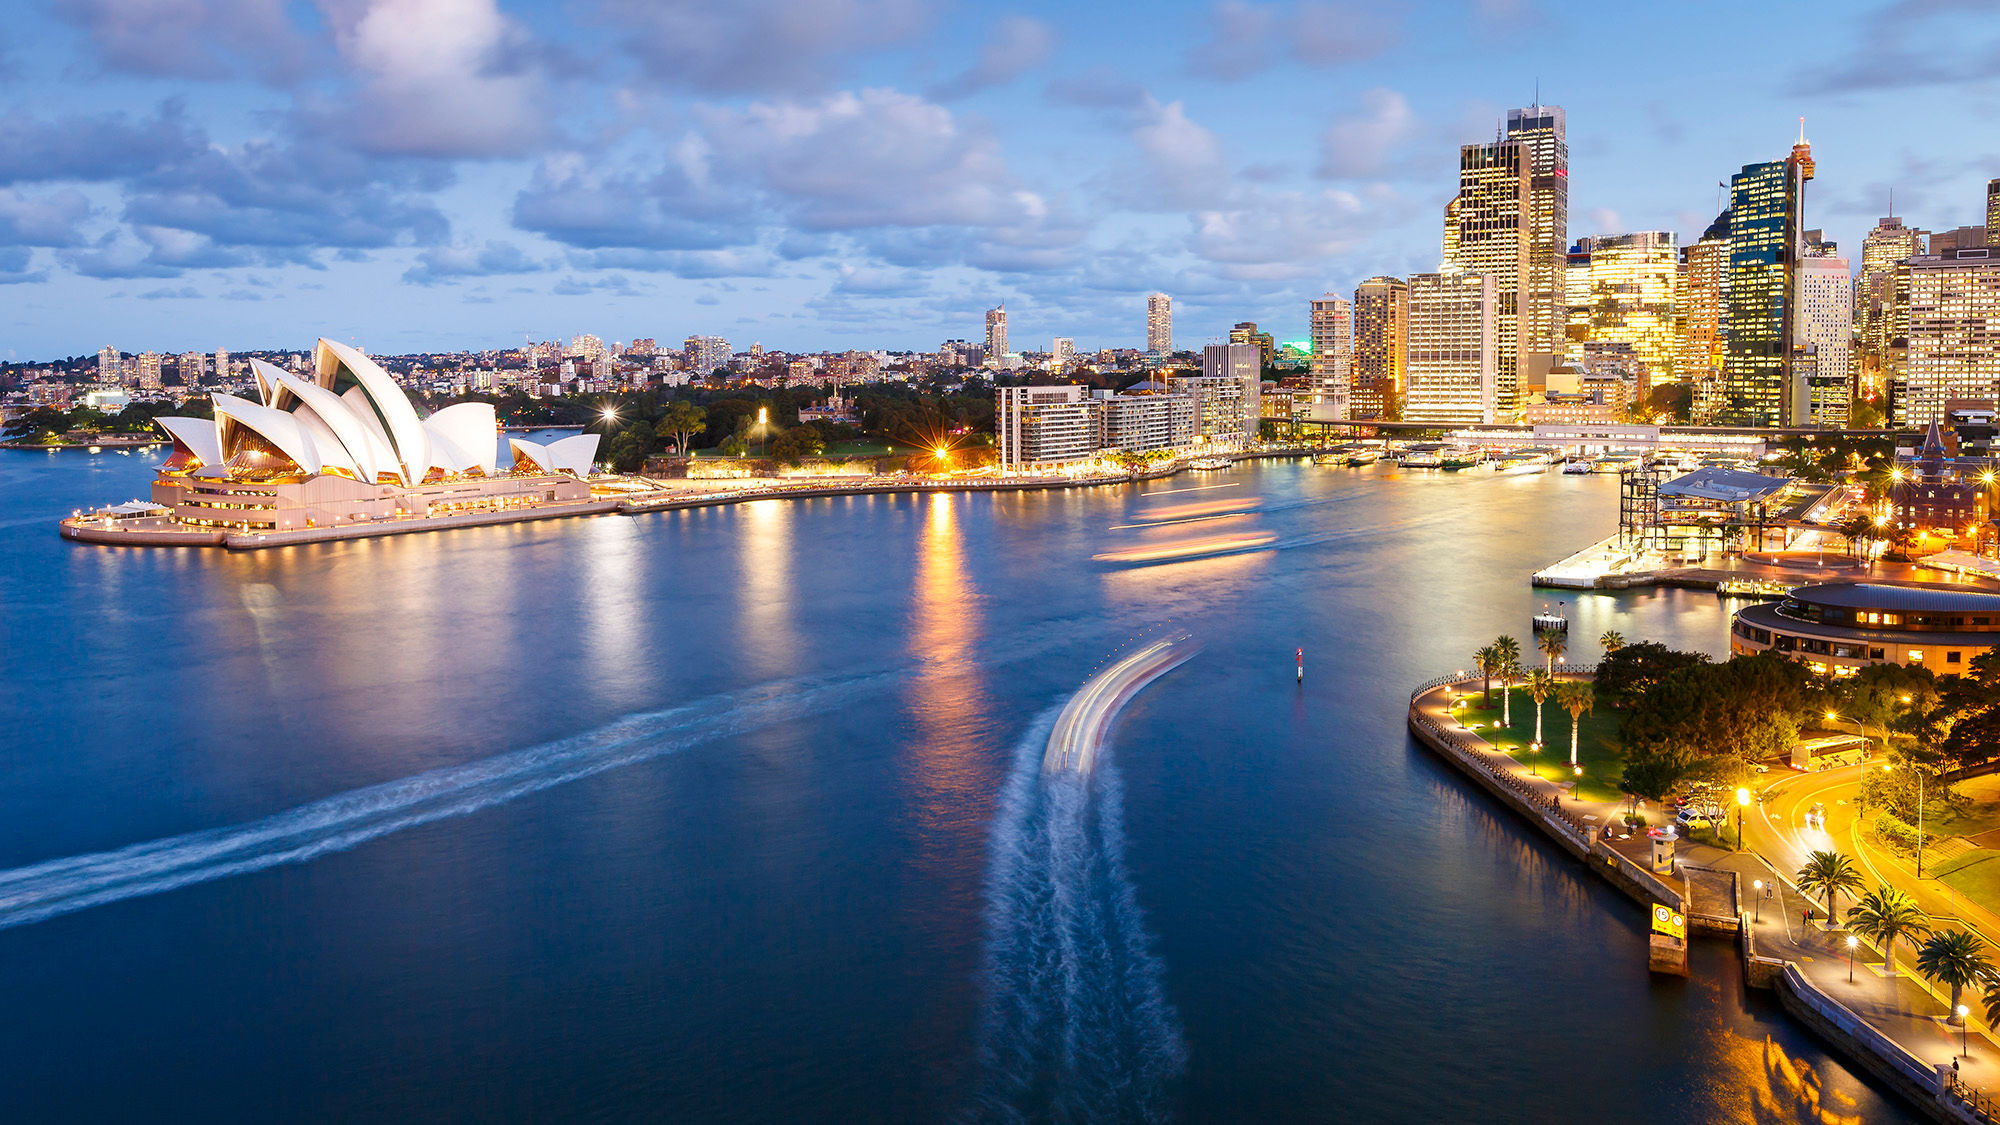 Australia won't welcome foreign tourists until at least 2022